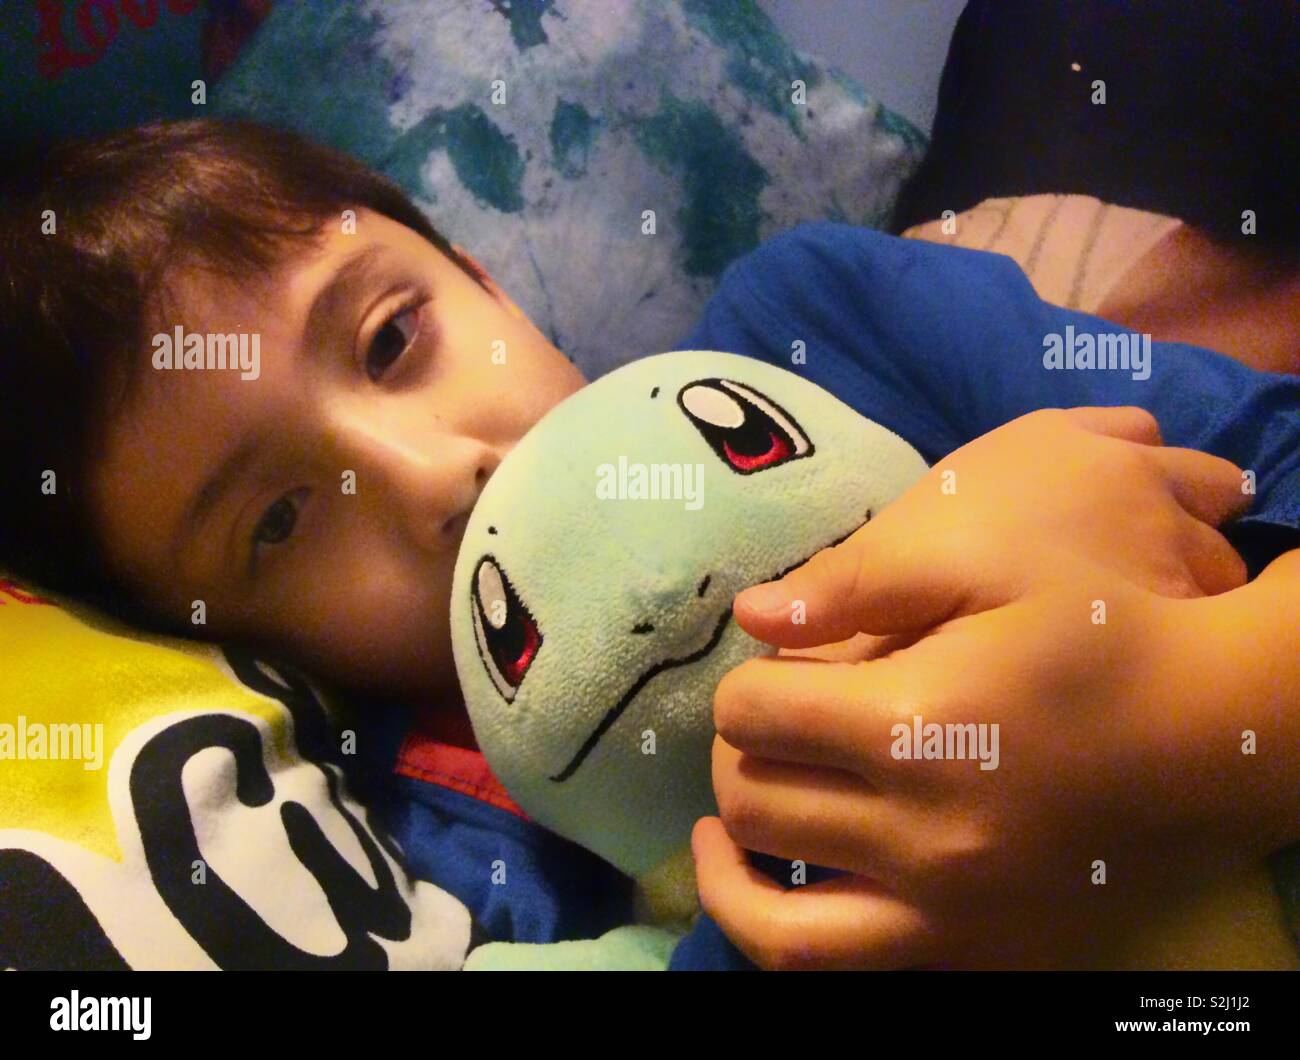 A young boy lying down in bed cuddling a cuddly toy. - Stock Image